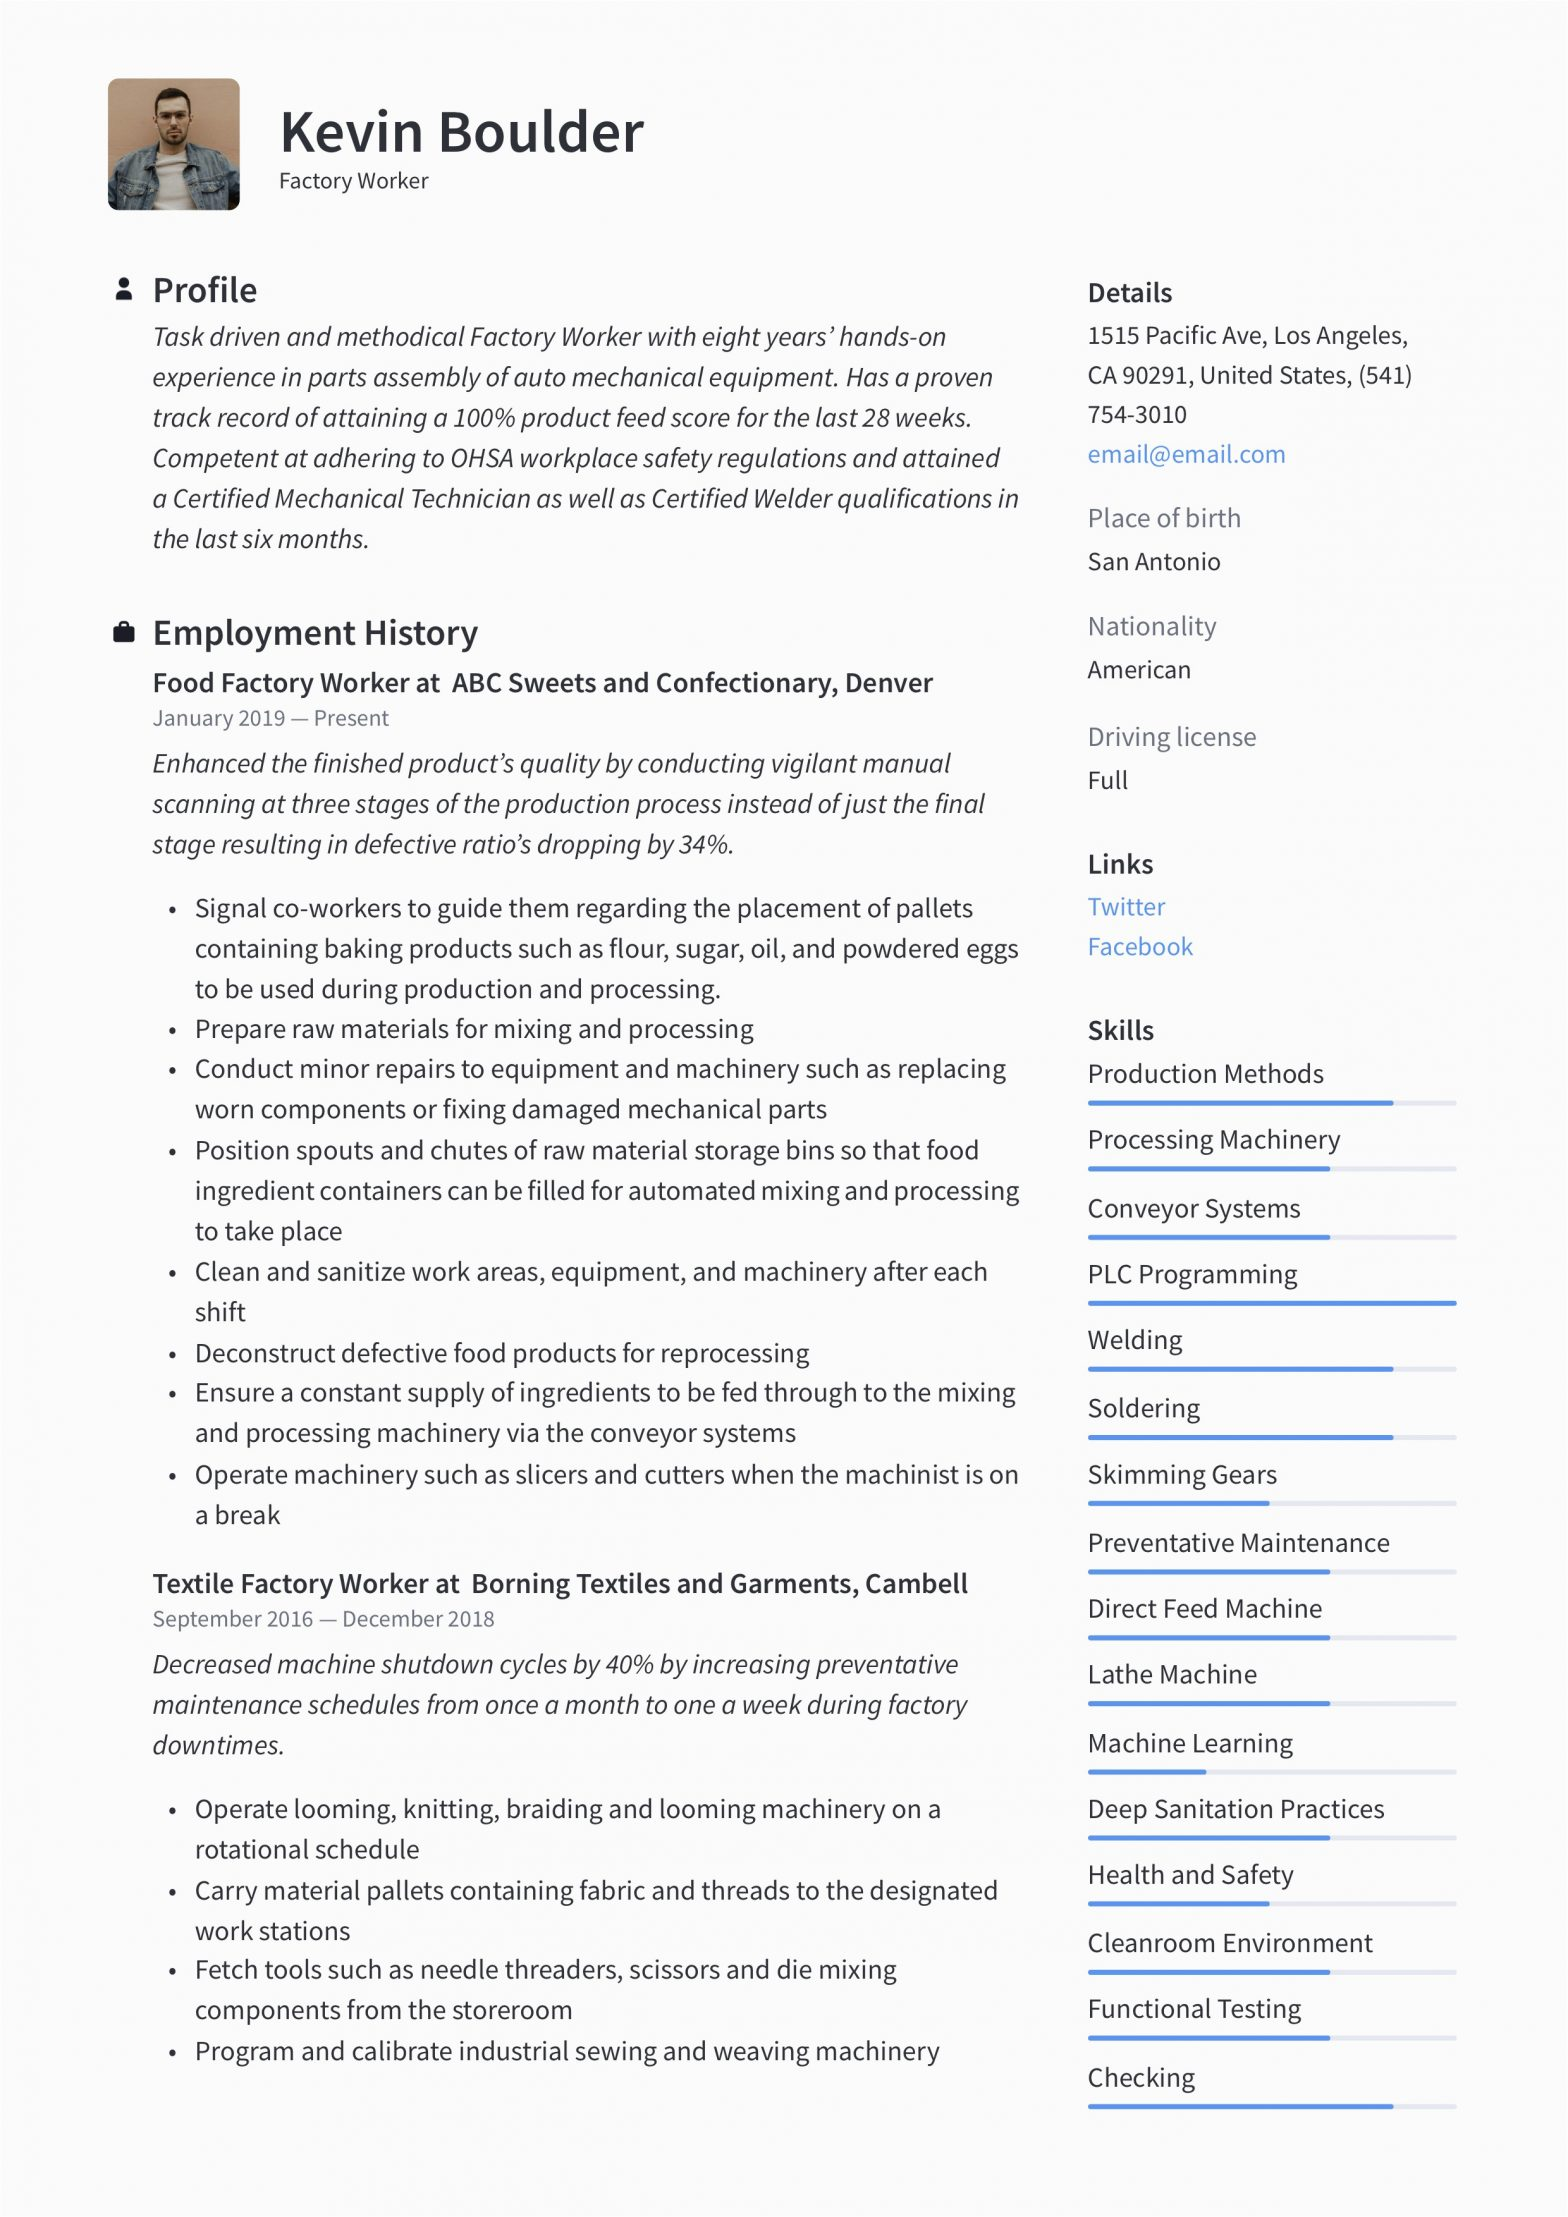 Sample Resume for A Factory Worker Factory Worker Resume & Writing Guide